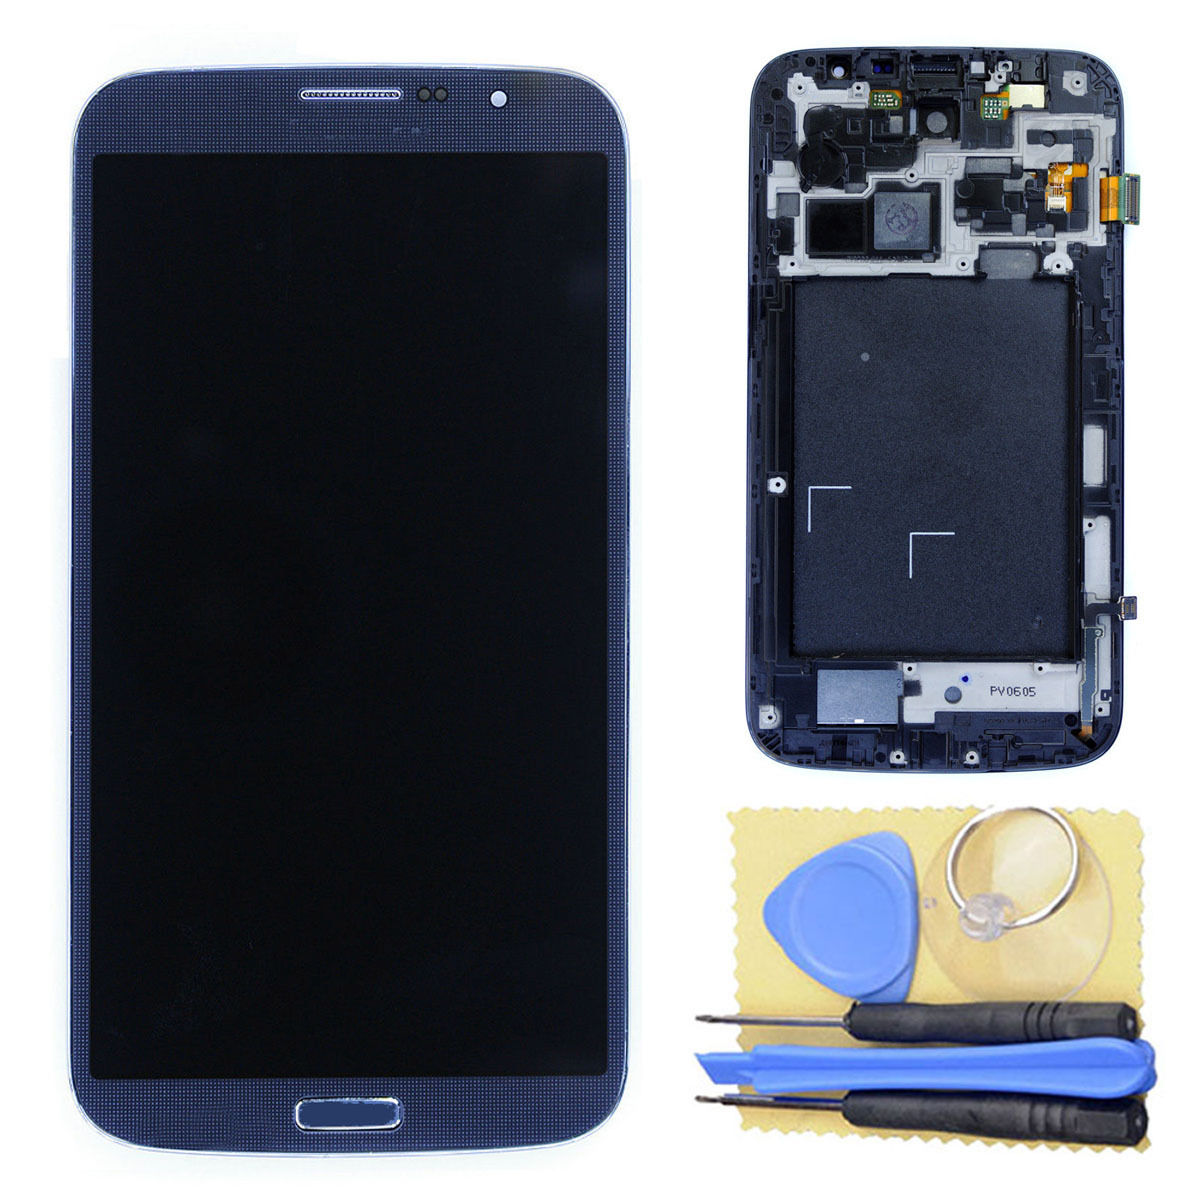 Tela Display Lcd Touch Screen Samsung Galaxy Mega 6.3 Origin